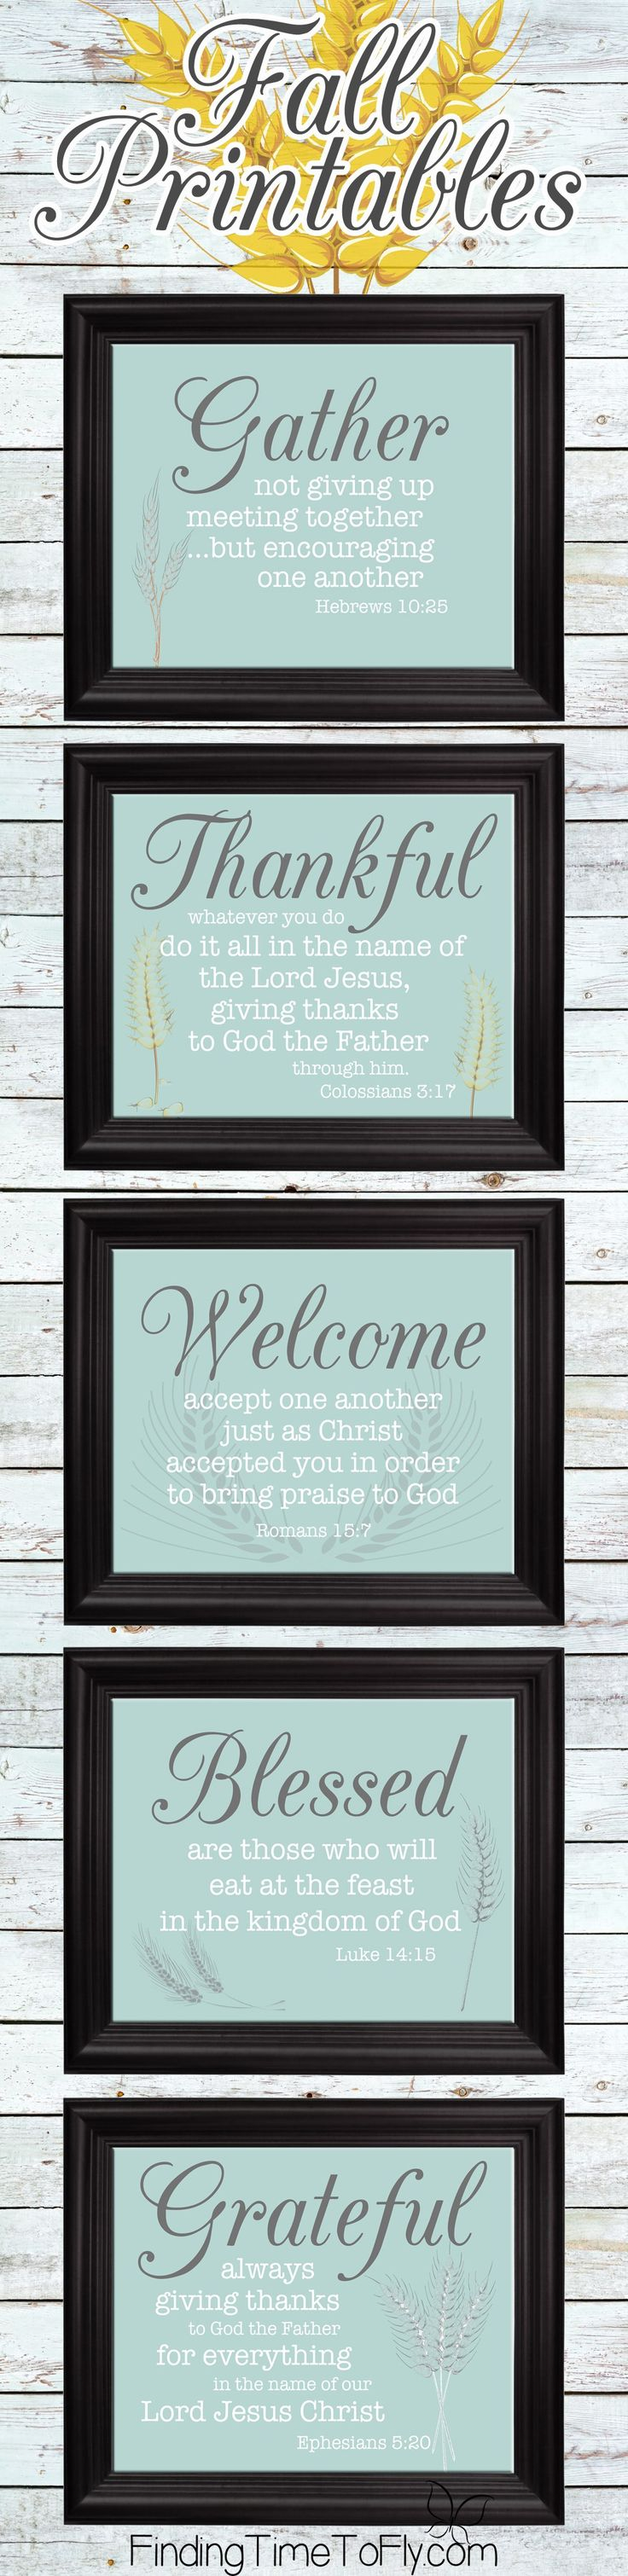 111 best Printables images on Pinterest | Free printables, Free ...